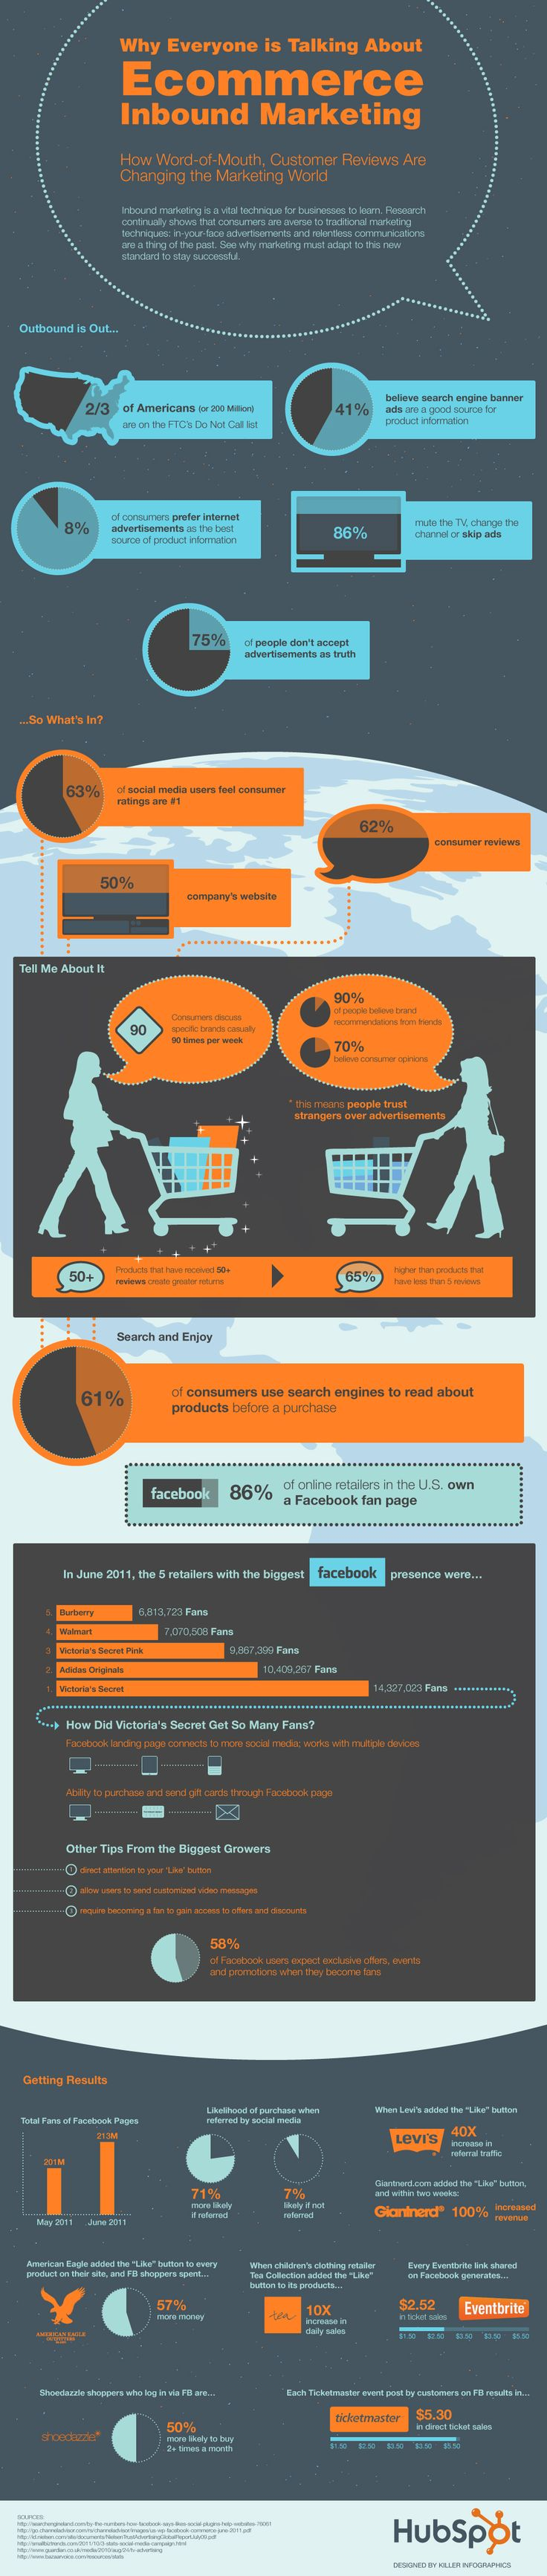 71% More Likely to Purchase Based on Social Media Referrals [Infographic]